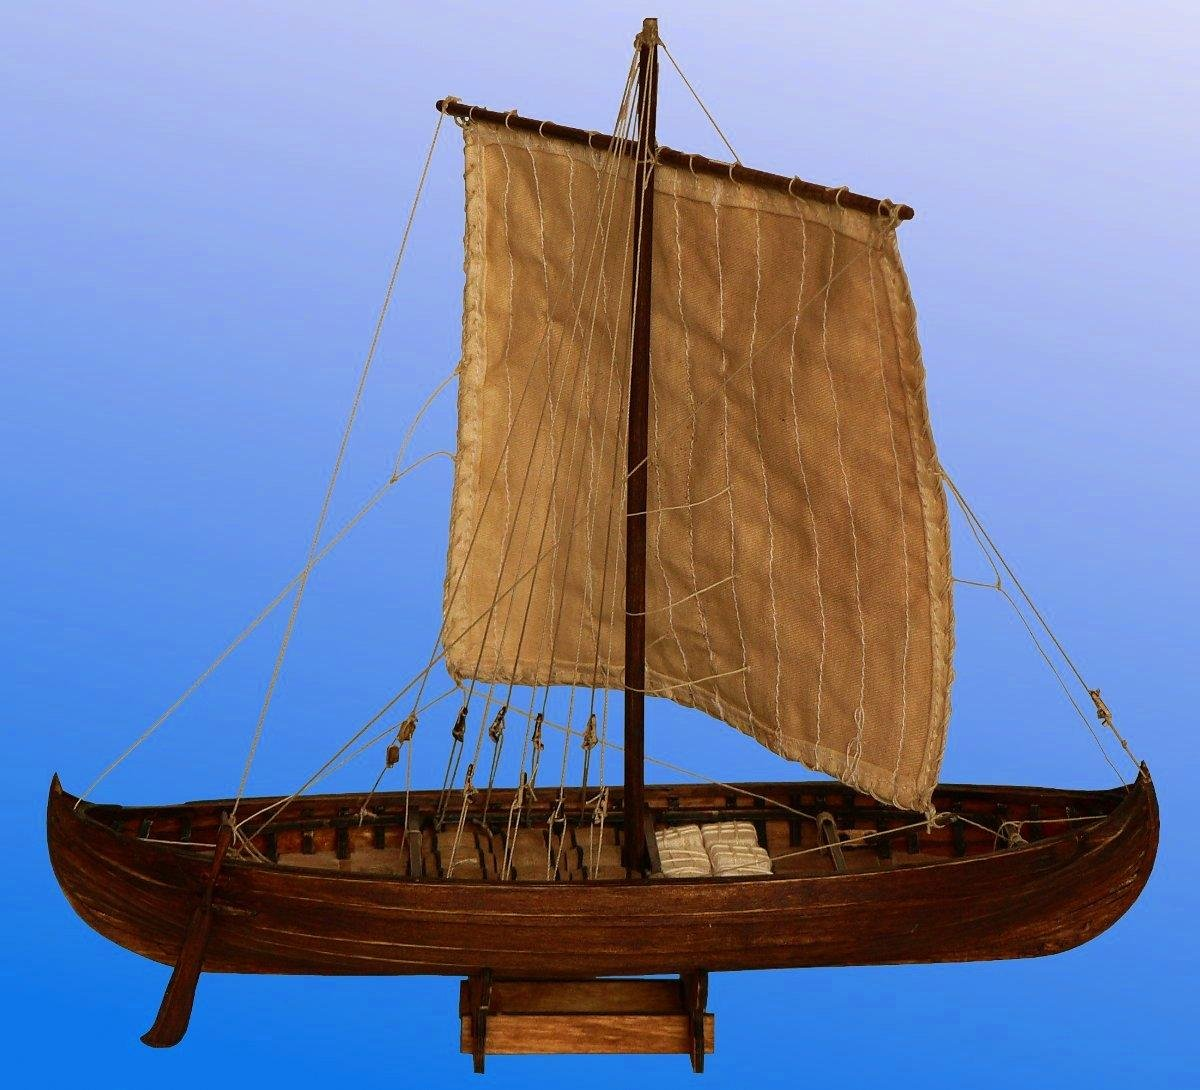 Amazon.com: Vikingo Knarr – Modelo Ship Kit por Dusek: Toys ...